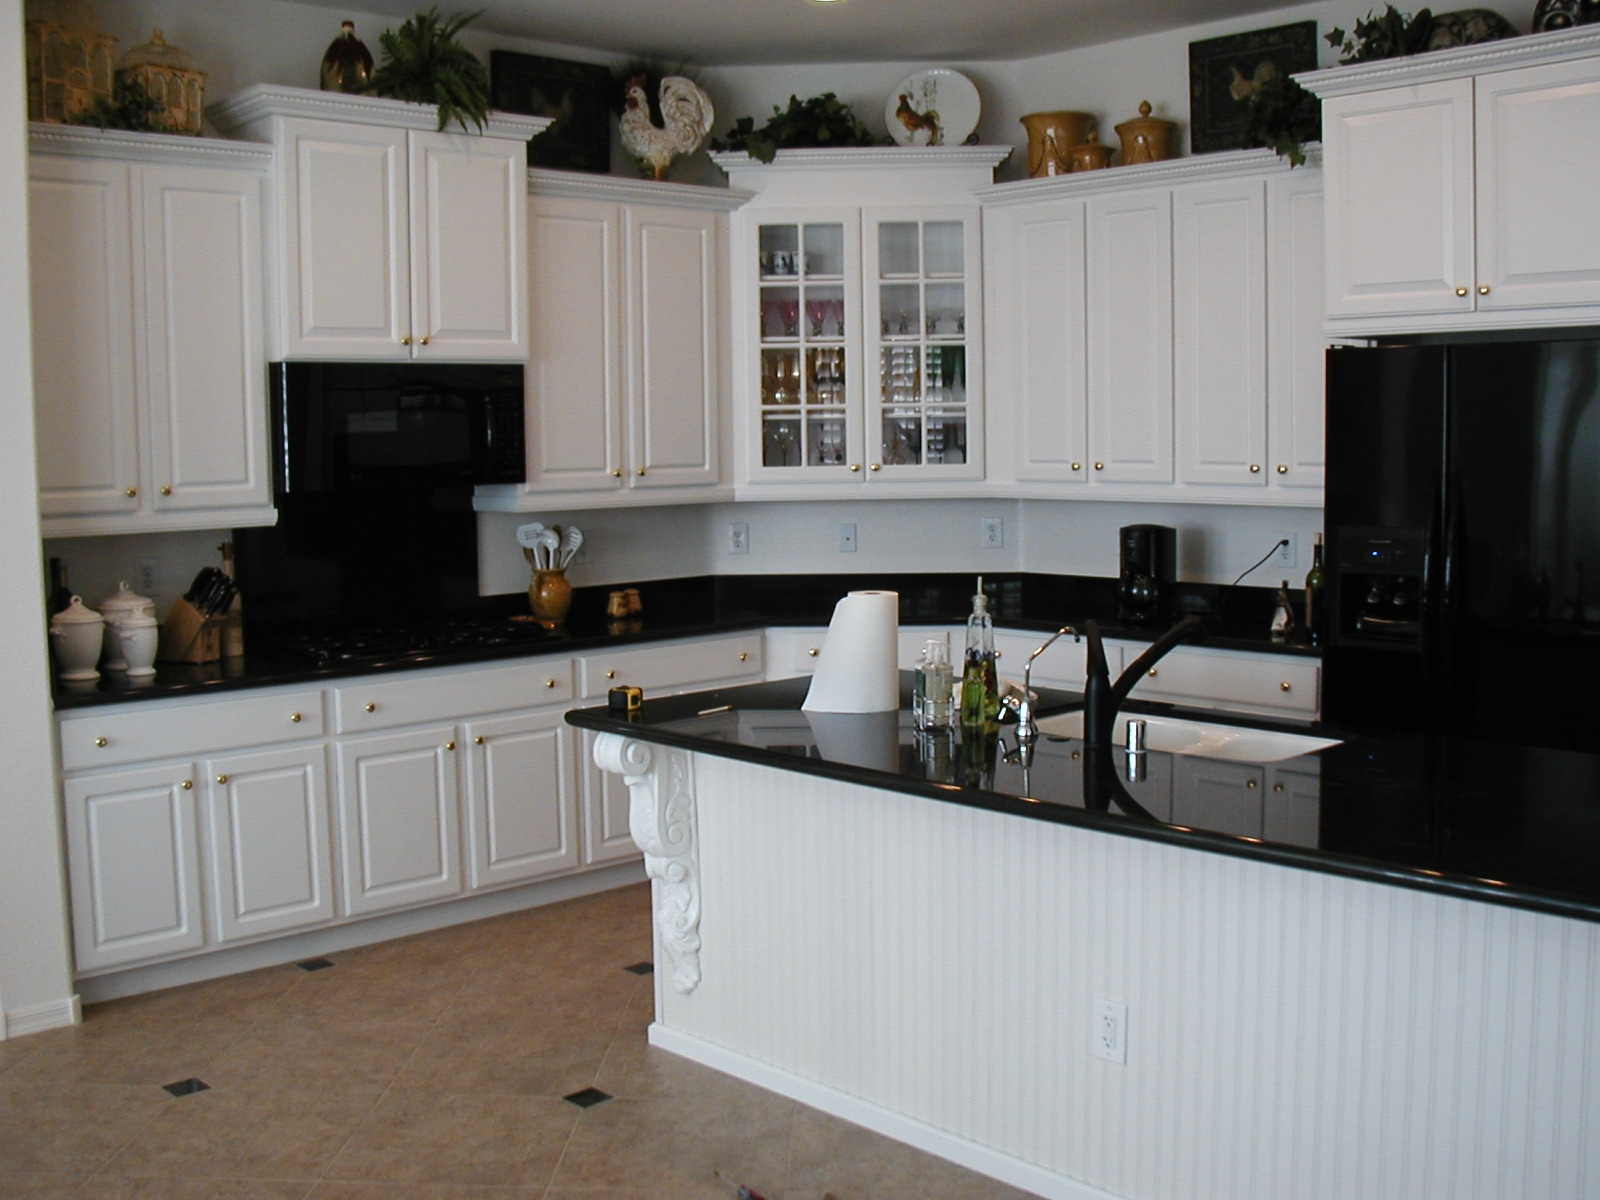 Kitchen white cabinets dark backsplash Interior Exterior Doors